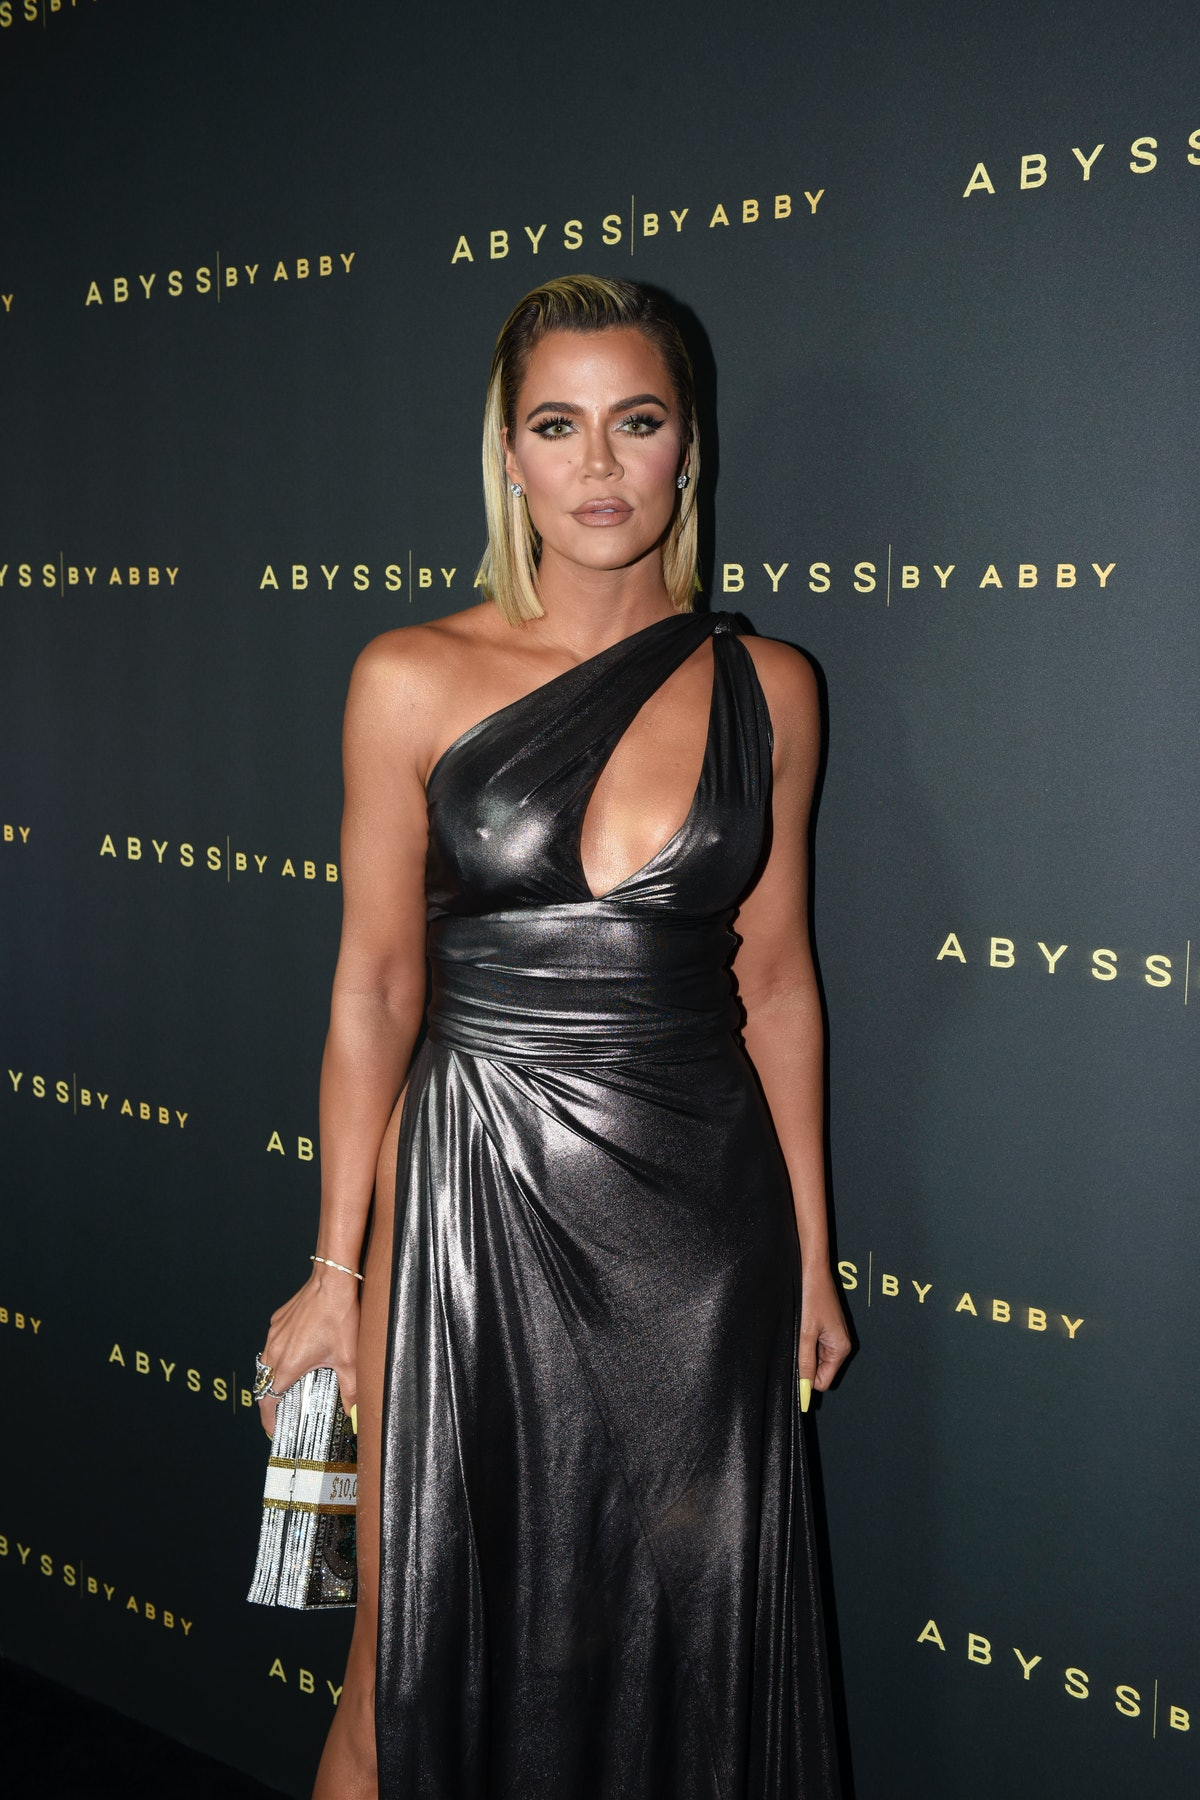 Khloe Kardashian attends a launch party at Casita Hollywood on January 21, 2020 in Los Angeles, Cali...